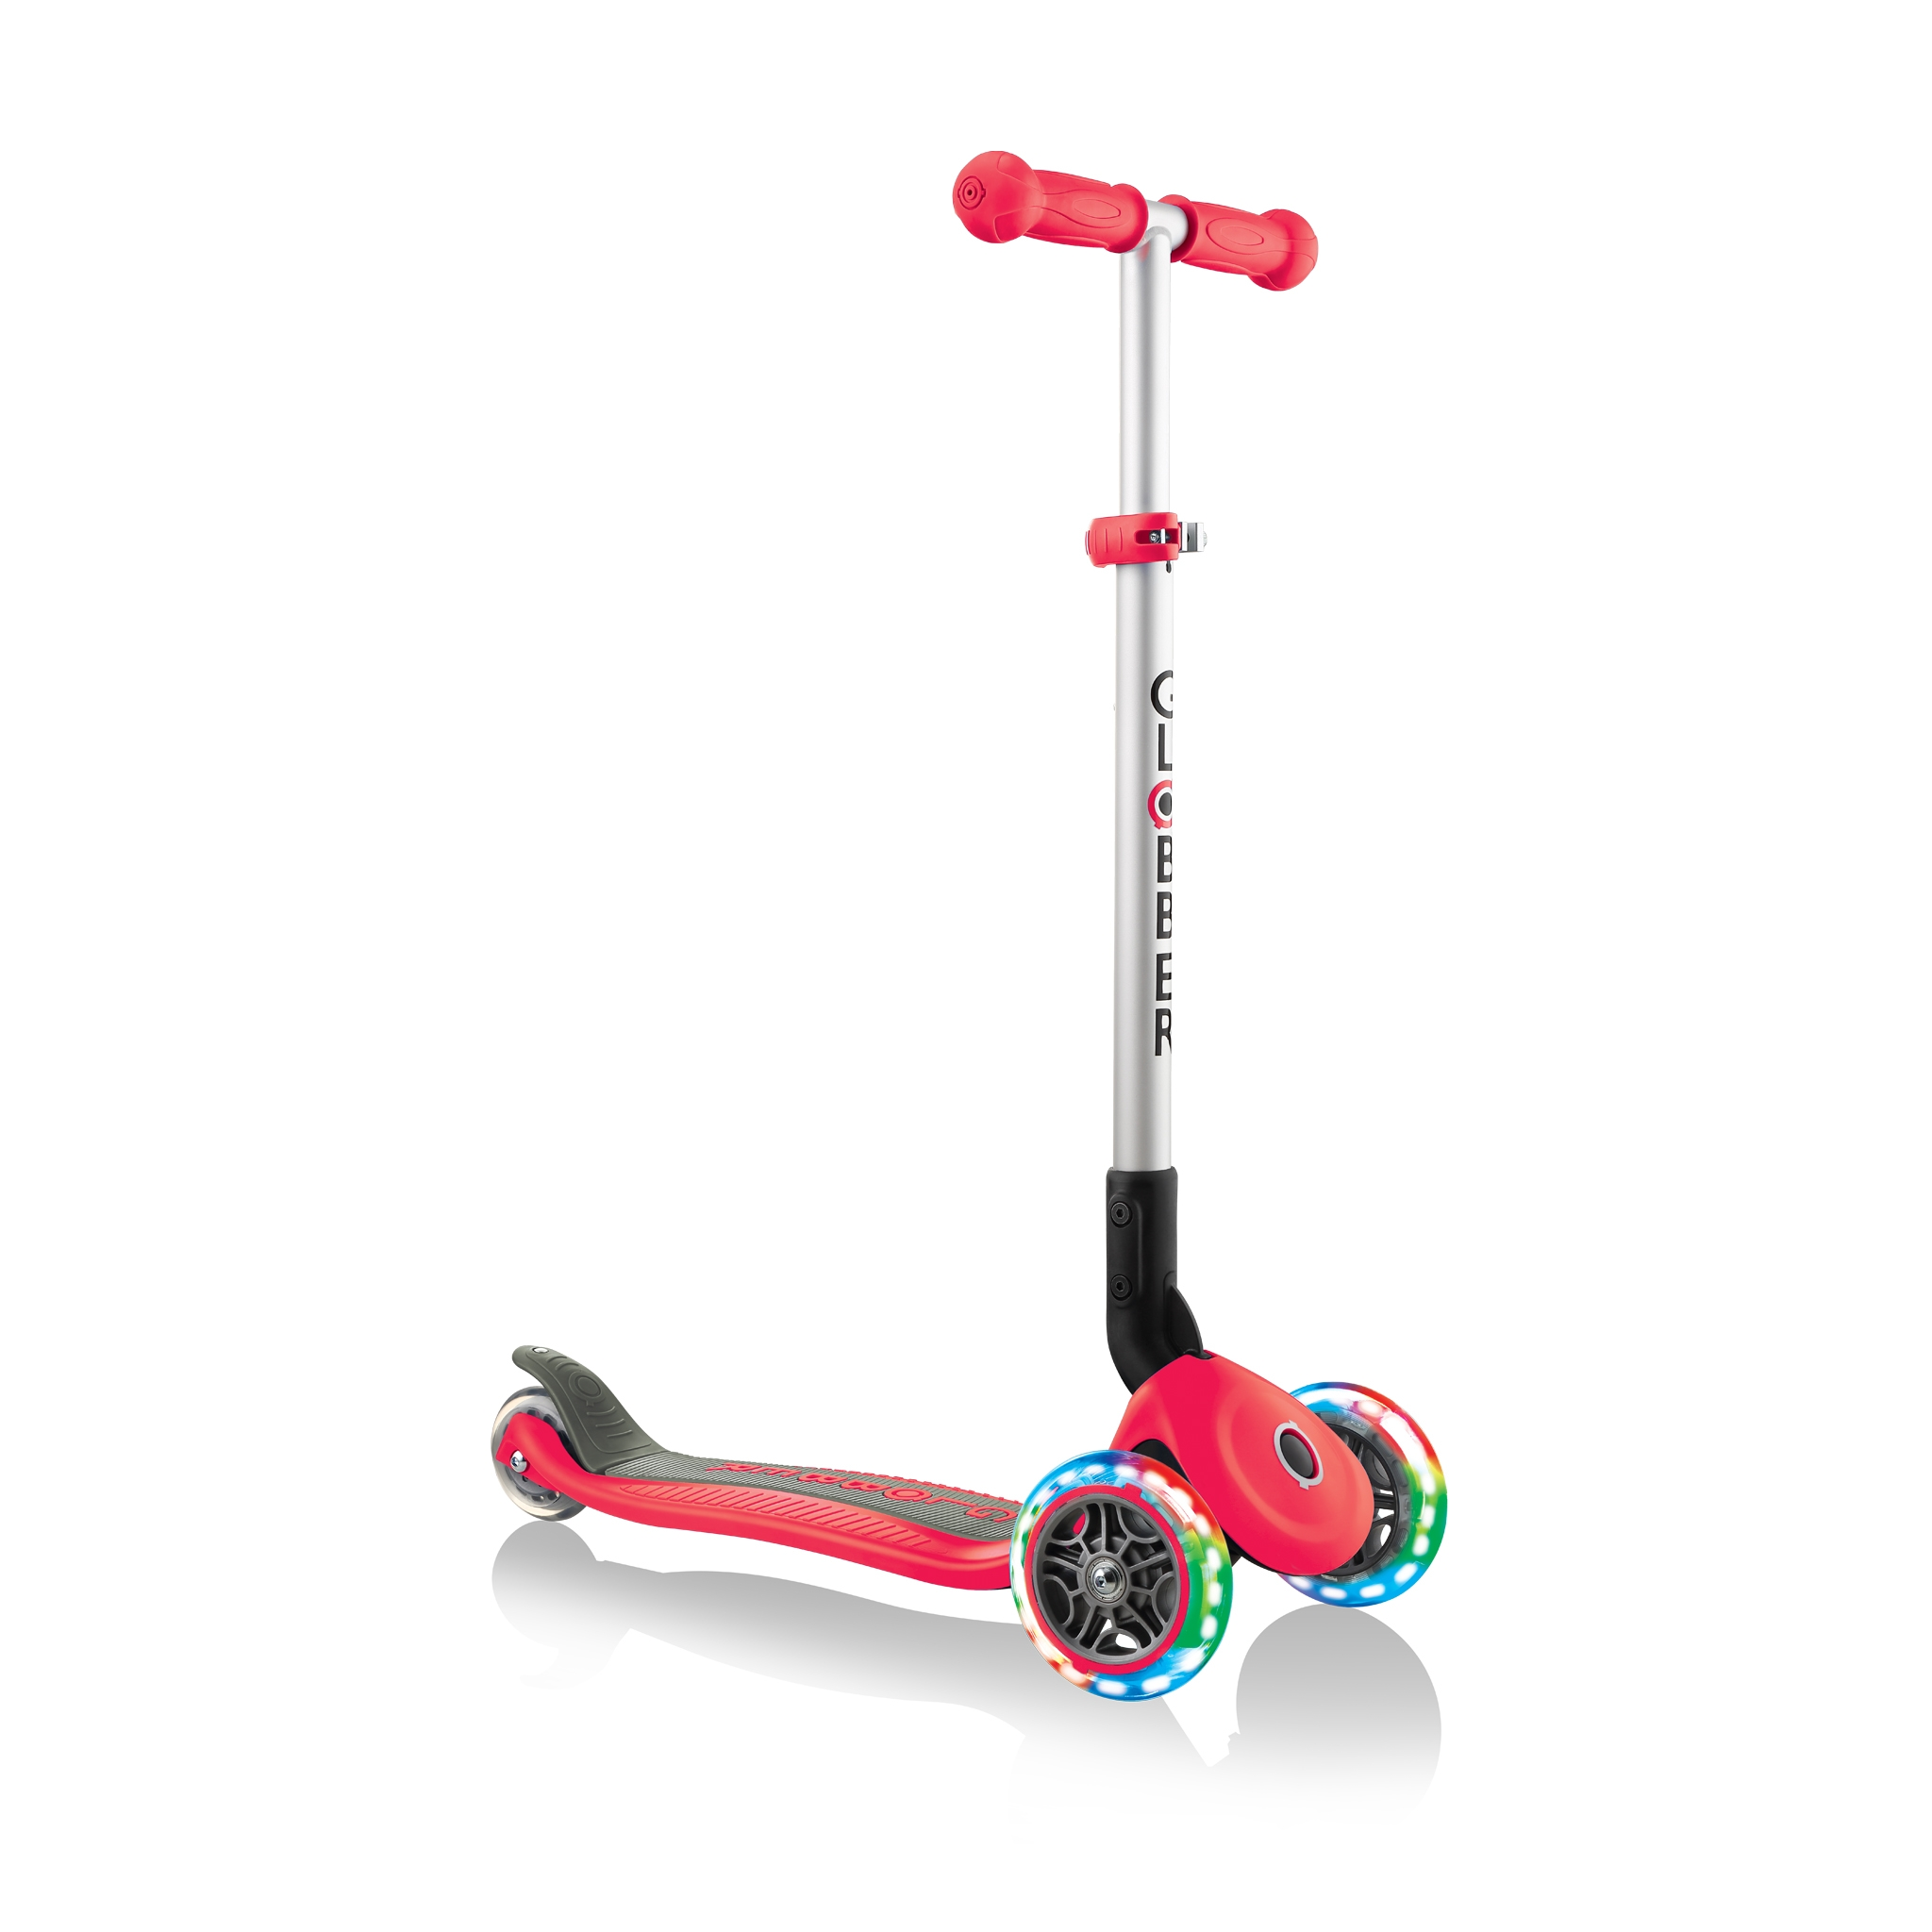 PRIMO-FOLDABLE-LIGHTS-3-wheel-foldable-scooter-light-up-scooter-for-kids-new-red